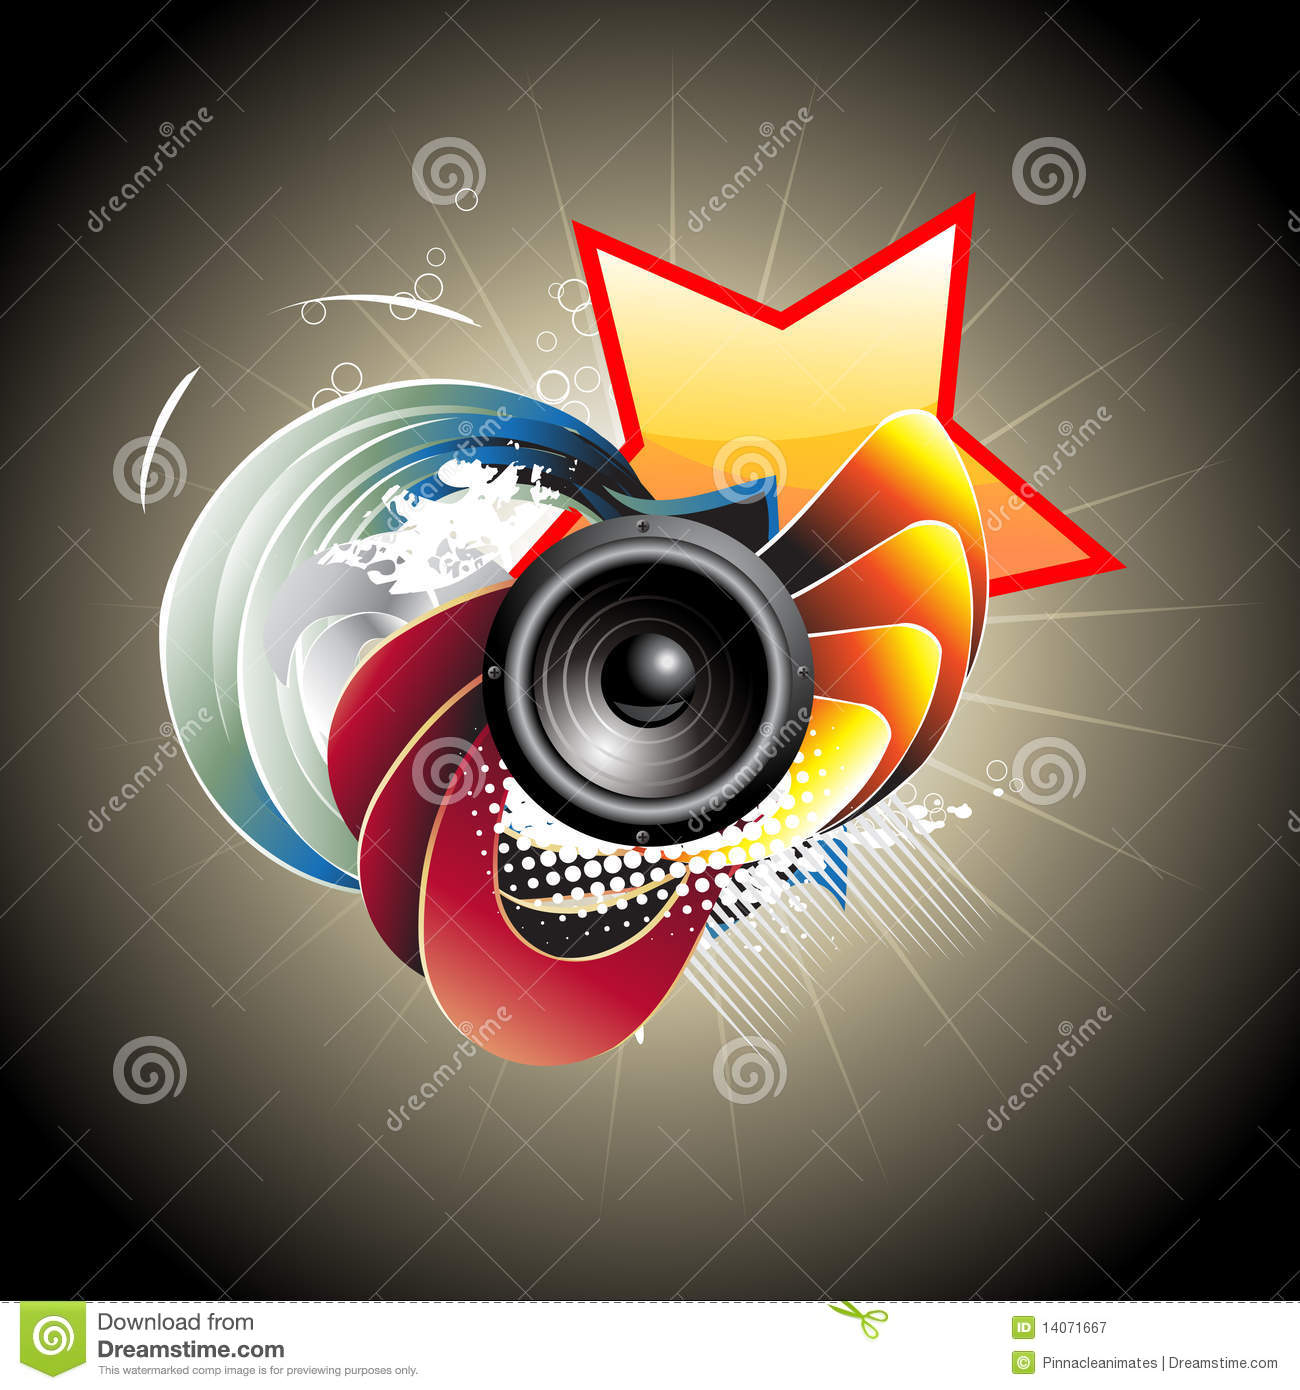 Vector musical speaker design with artistic background visit my